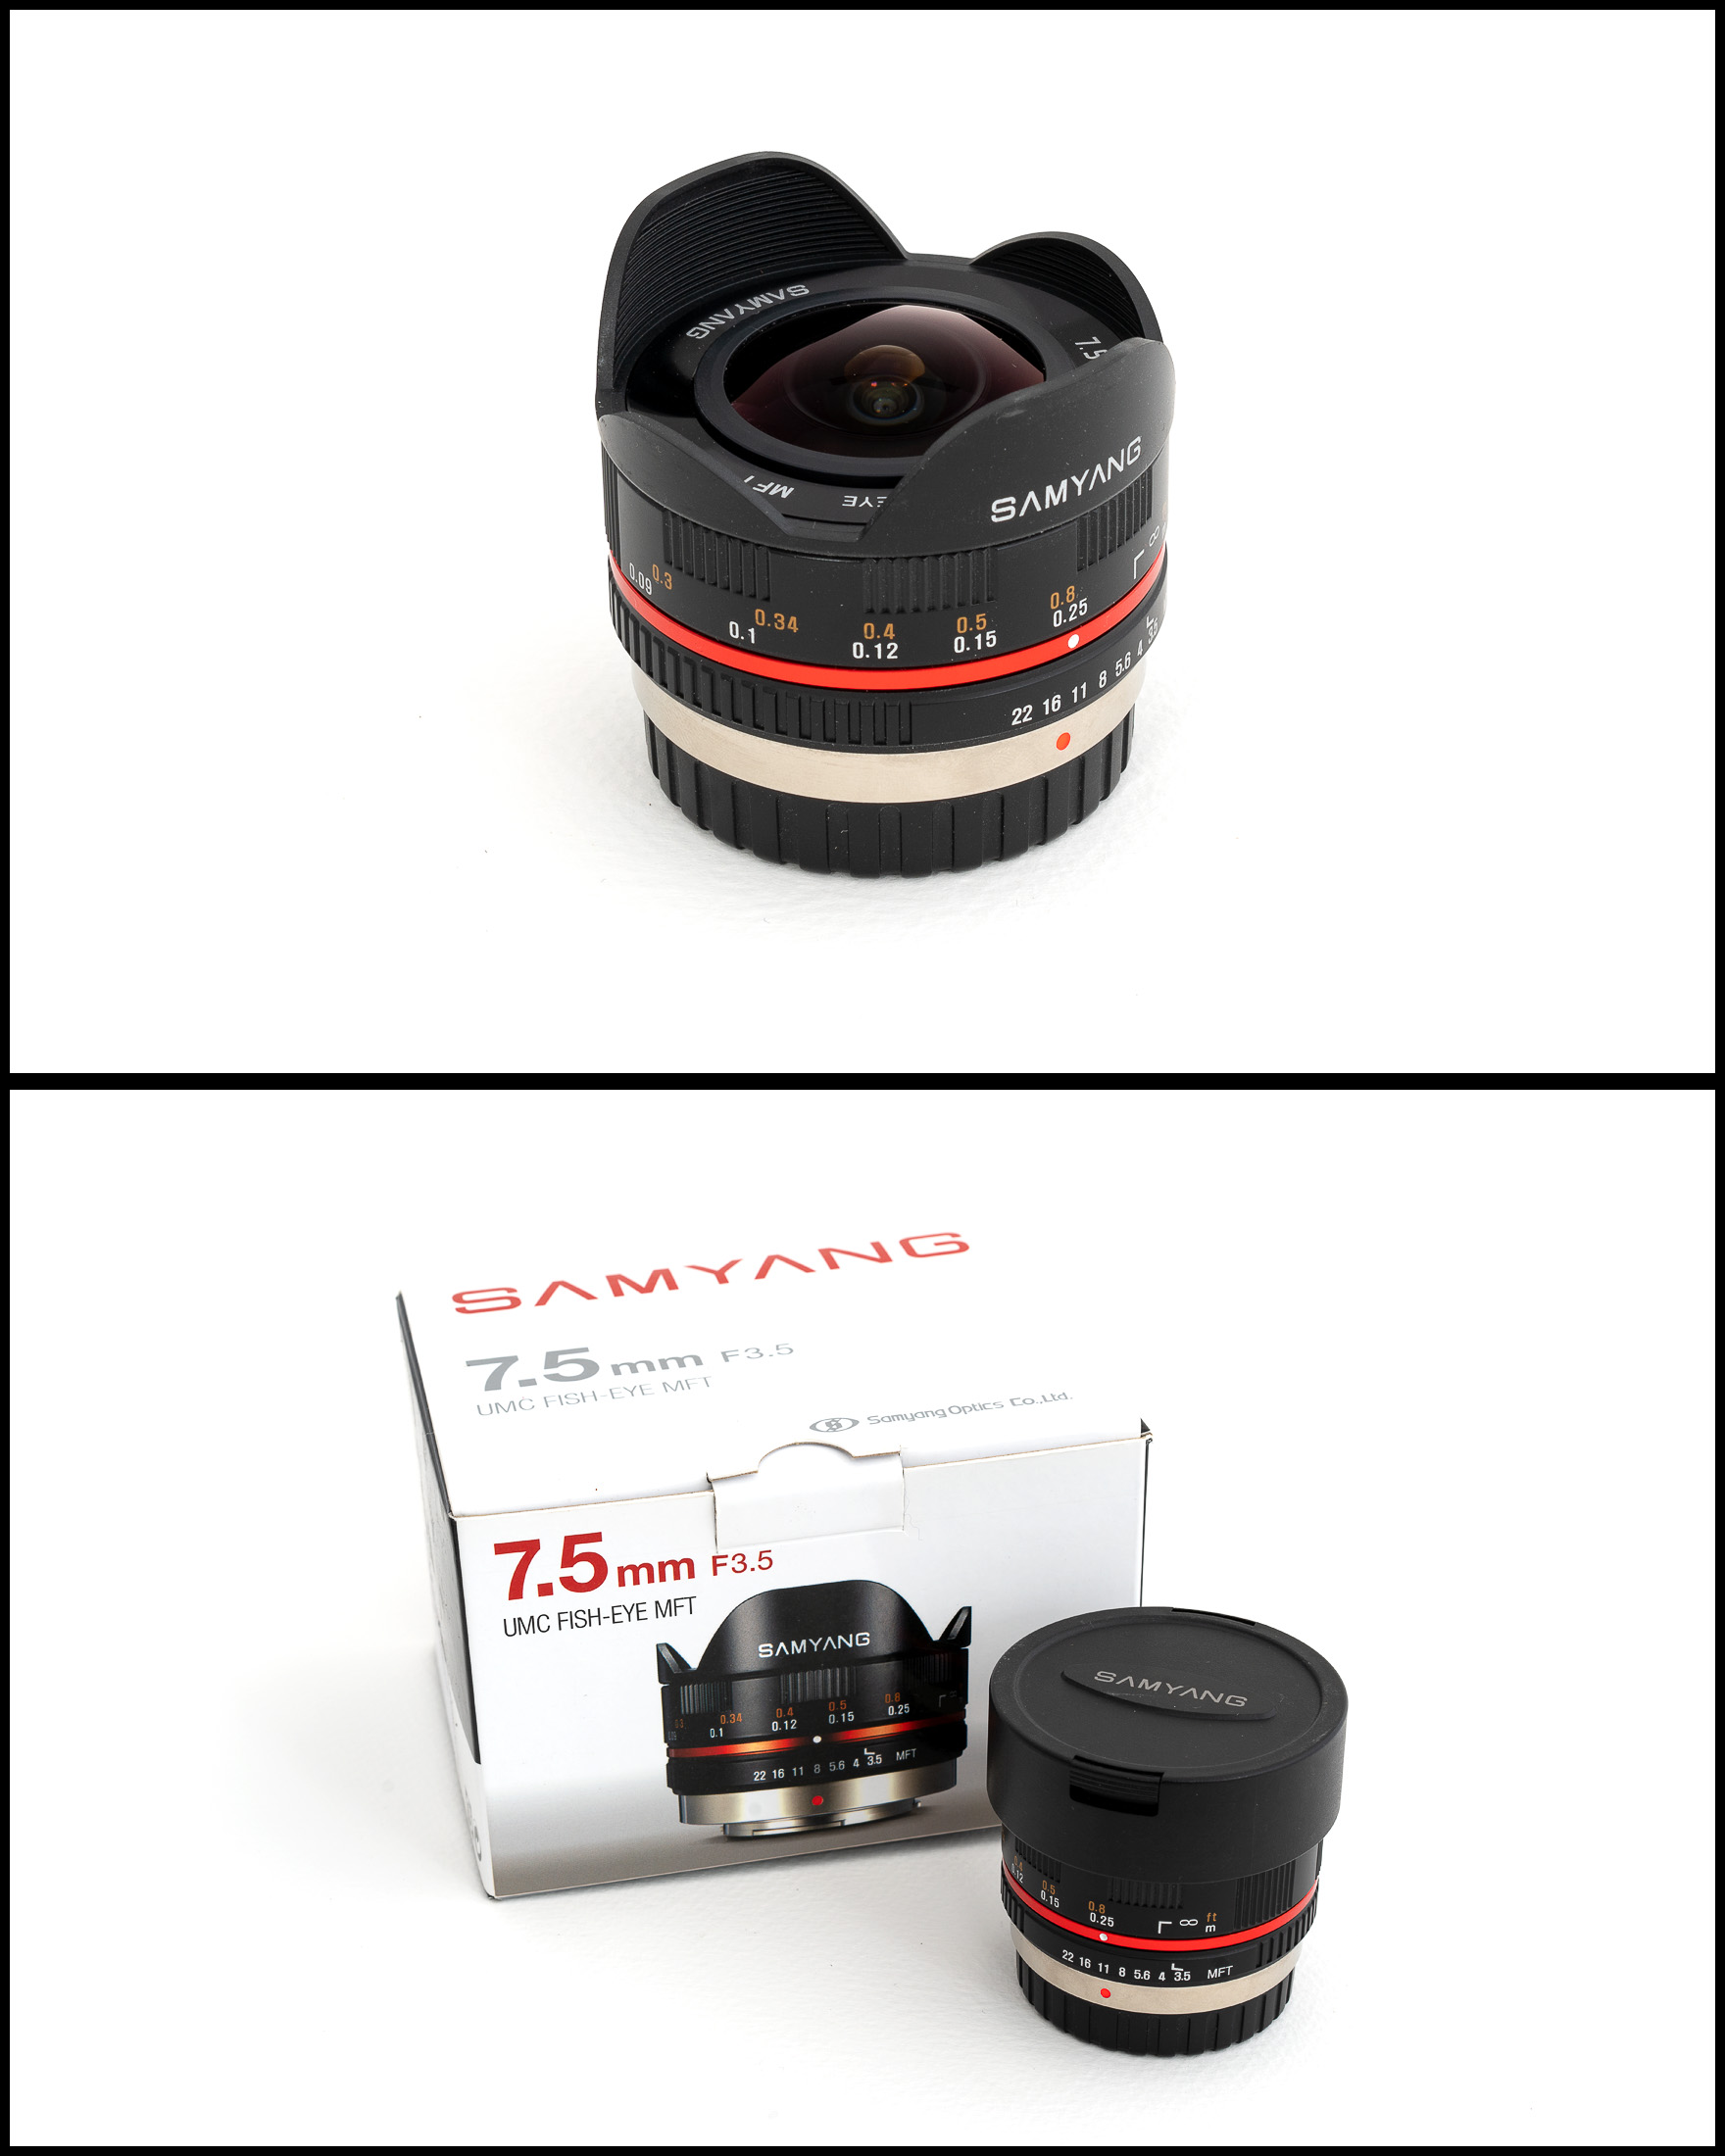 Samyang 7.5mm f3.5 UMC Fisheye (MFT fit)    £180   In excellent condition comes with front and rear caps, manual, pouch and original box.